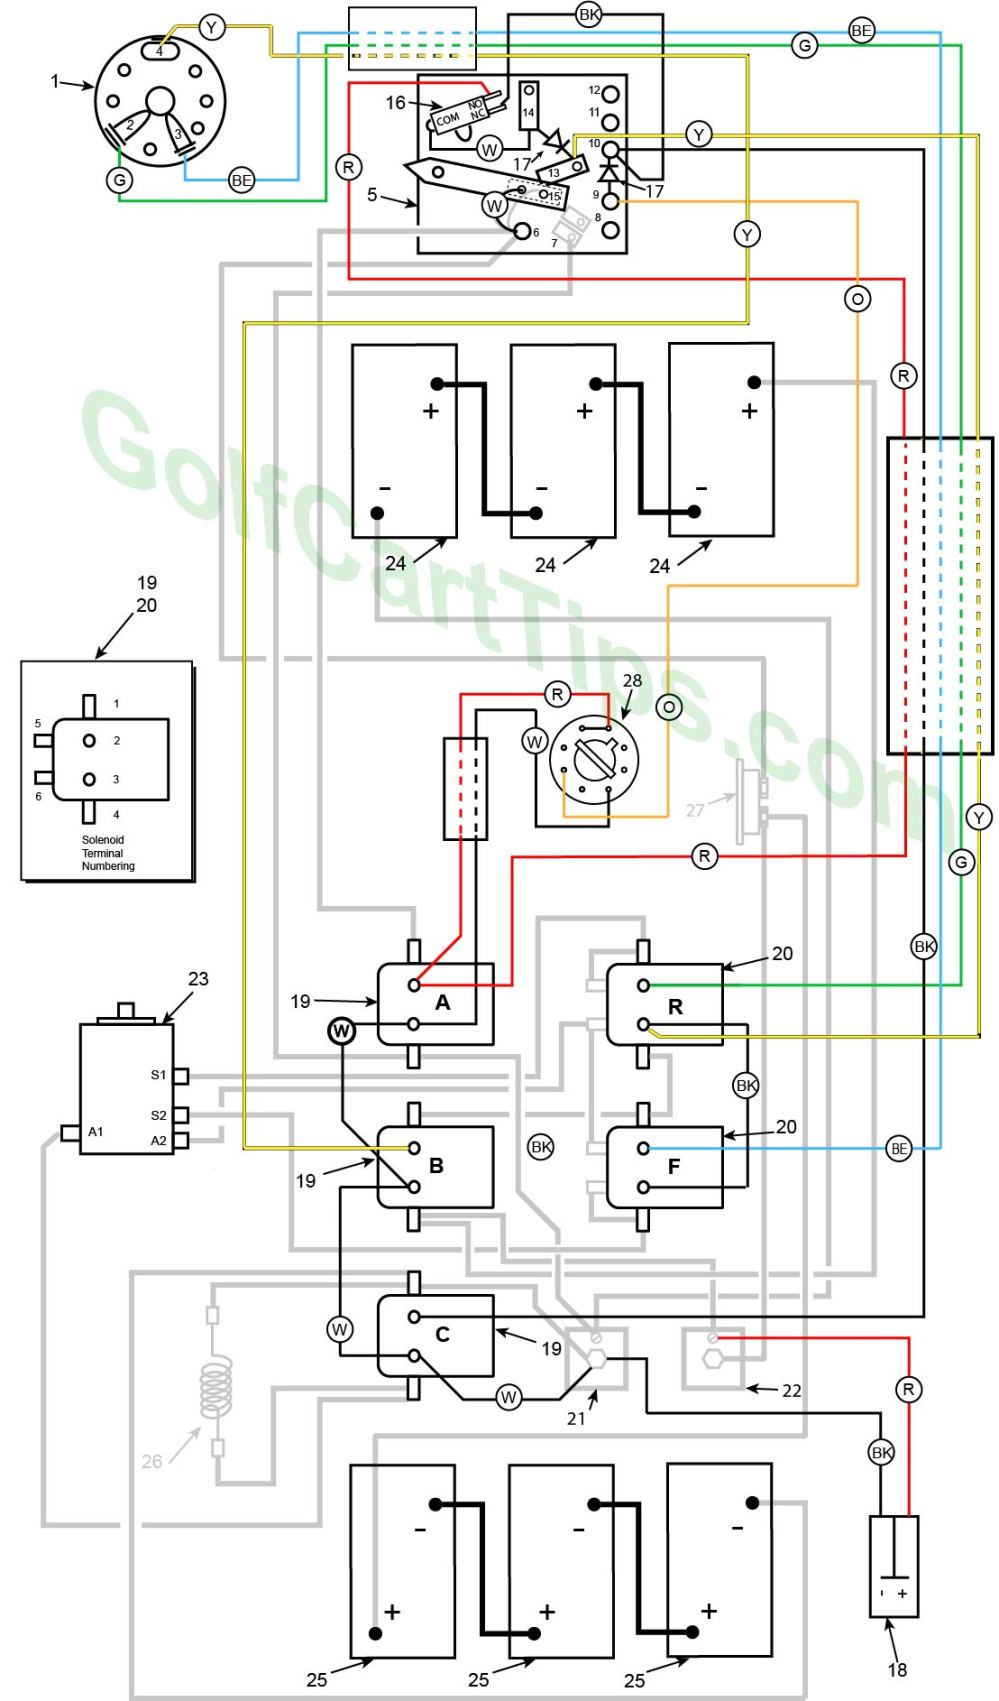 medium resolution of 1971 model de control circuit wiring diagram for 16 gauge wire